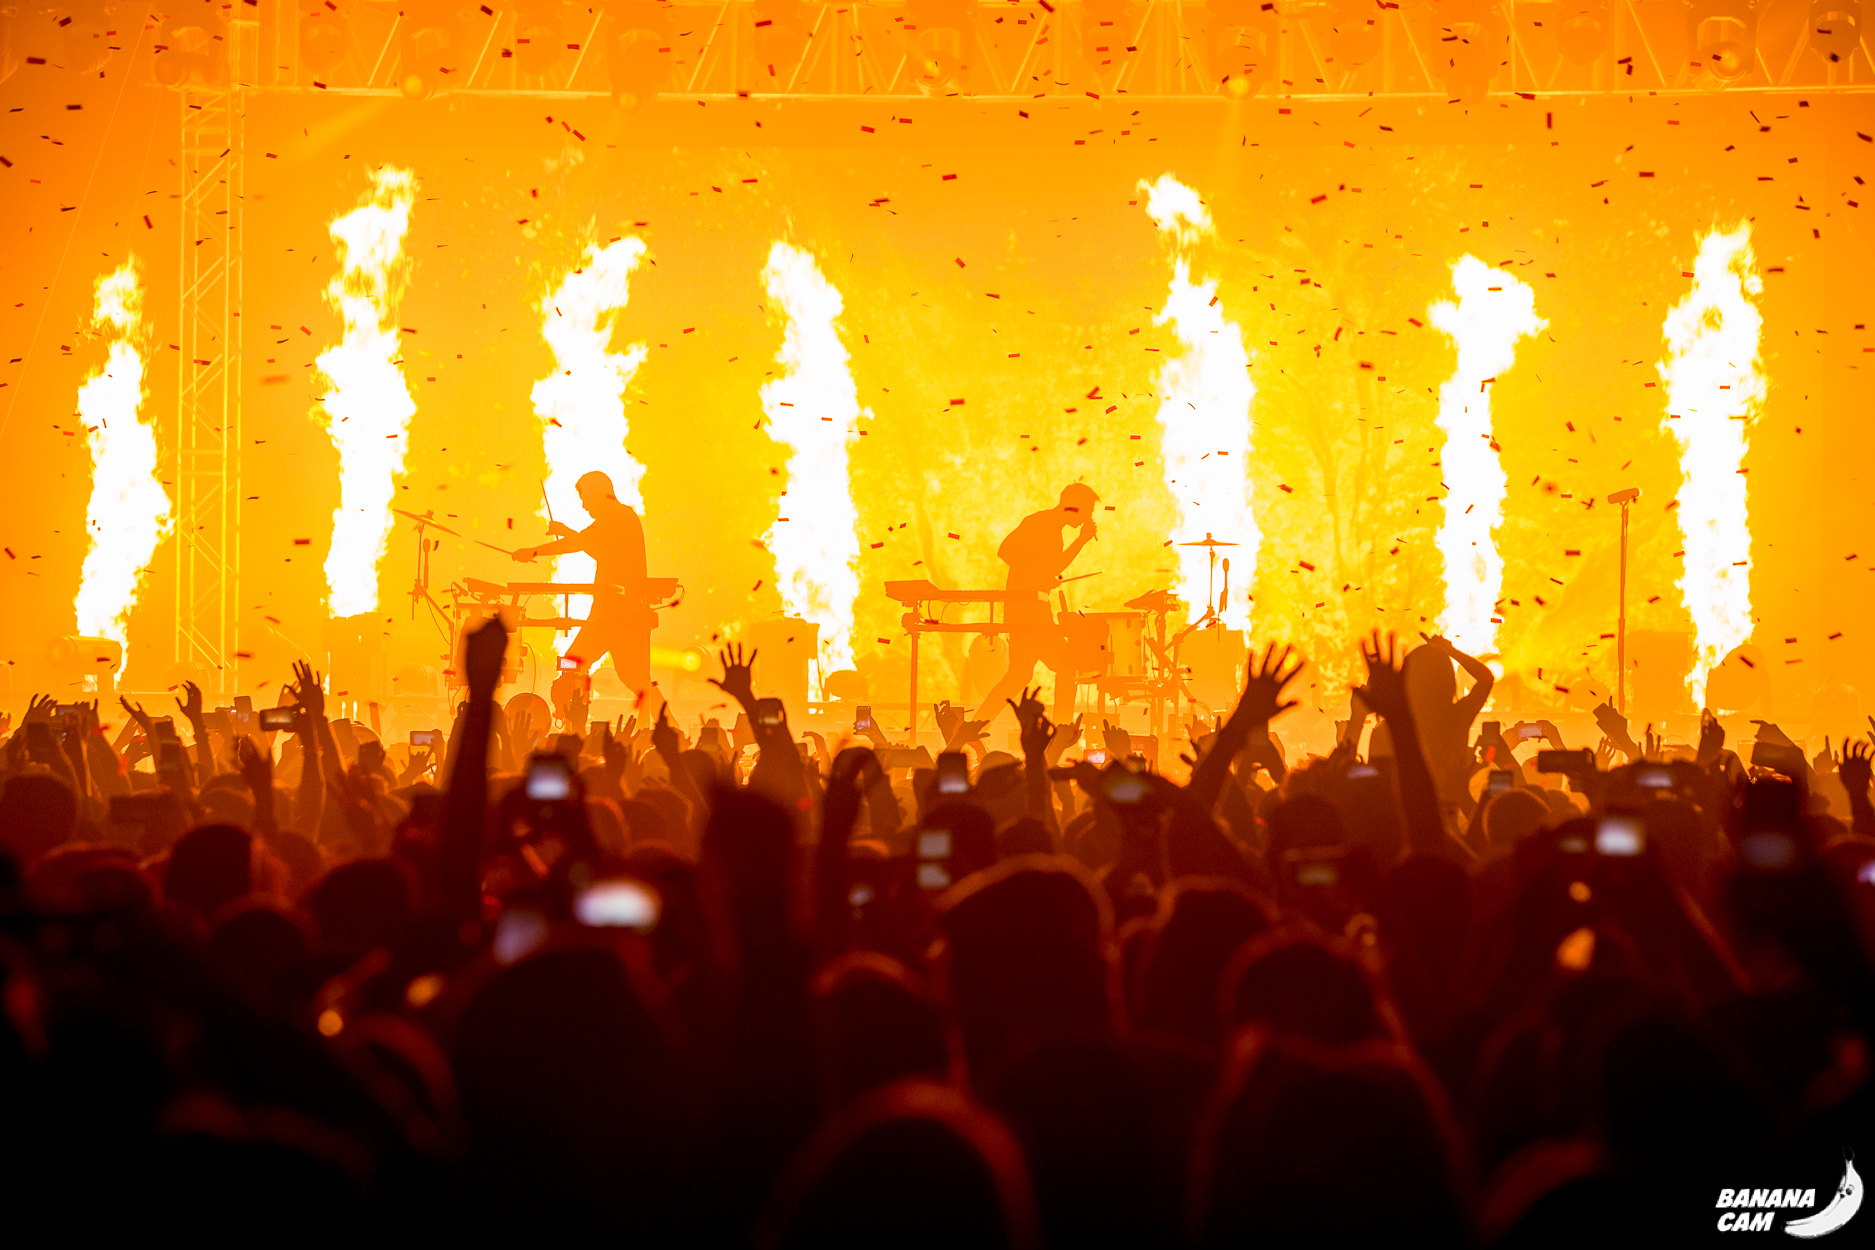 Odesza brings a moment apart to vancouver for two sold out nights malvernweather Choice Image